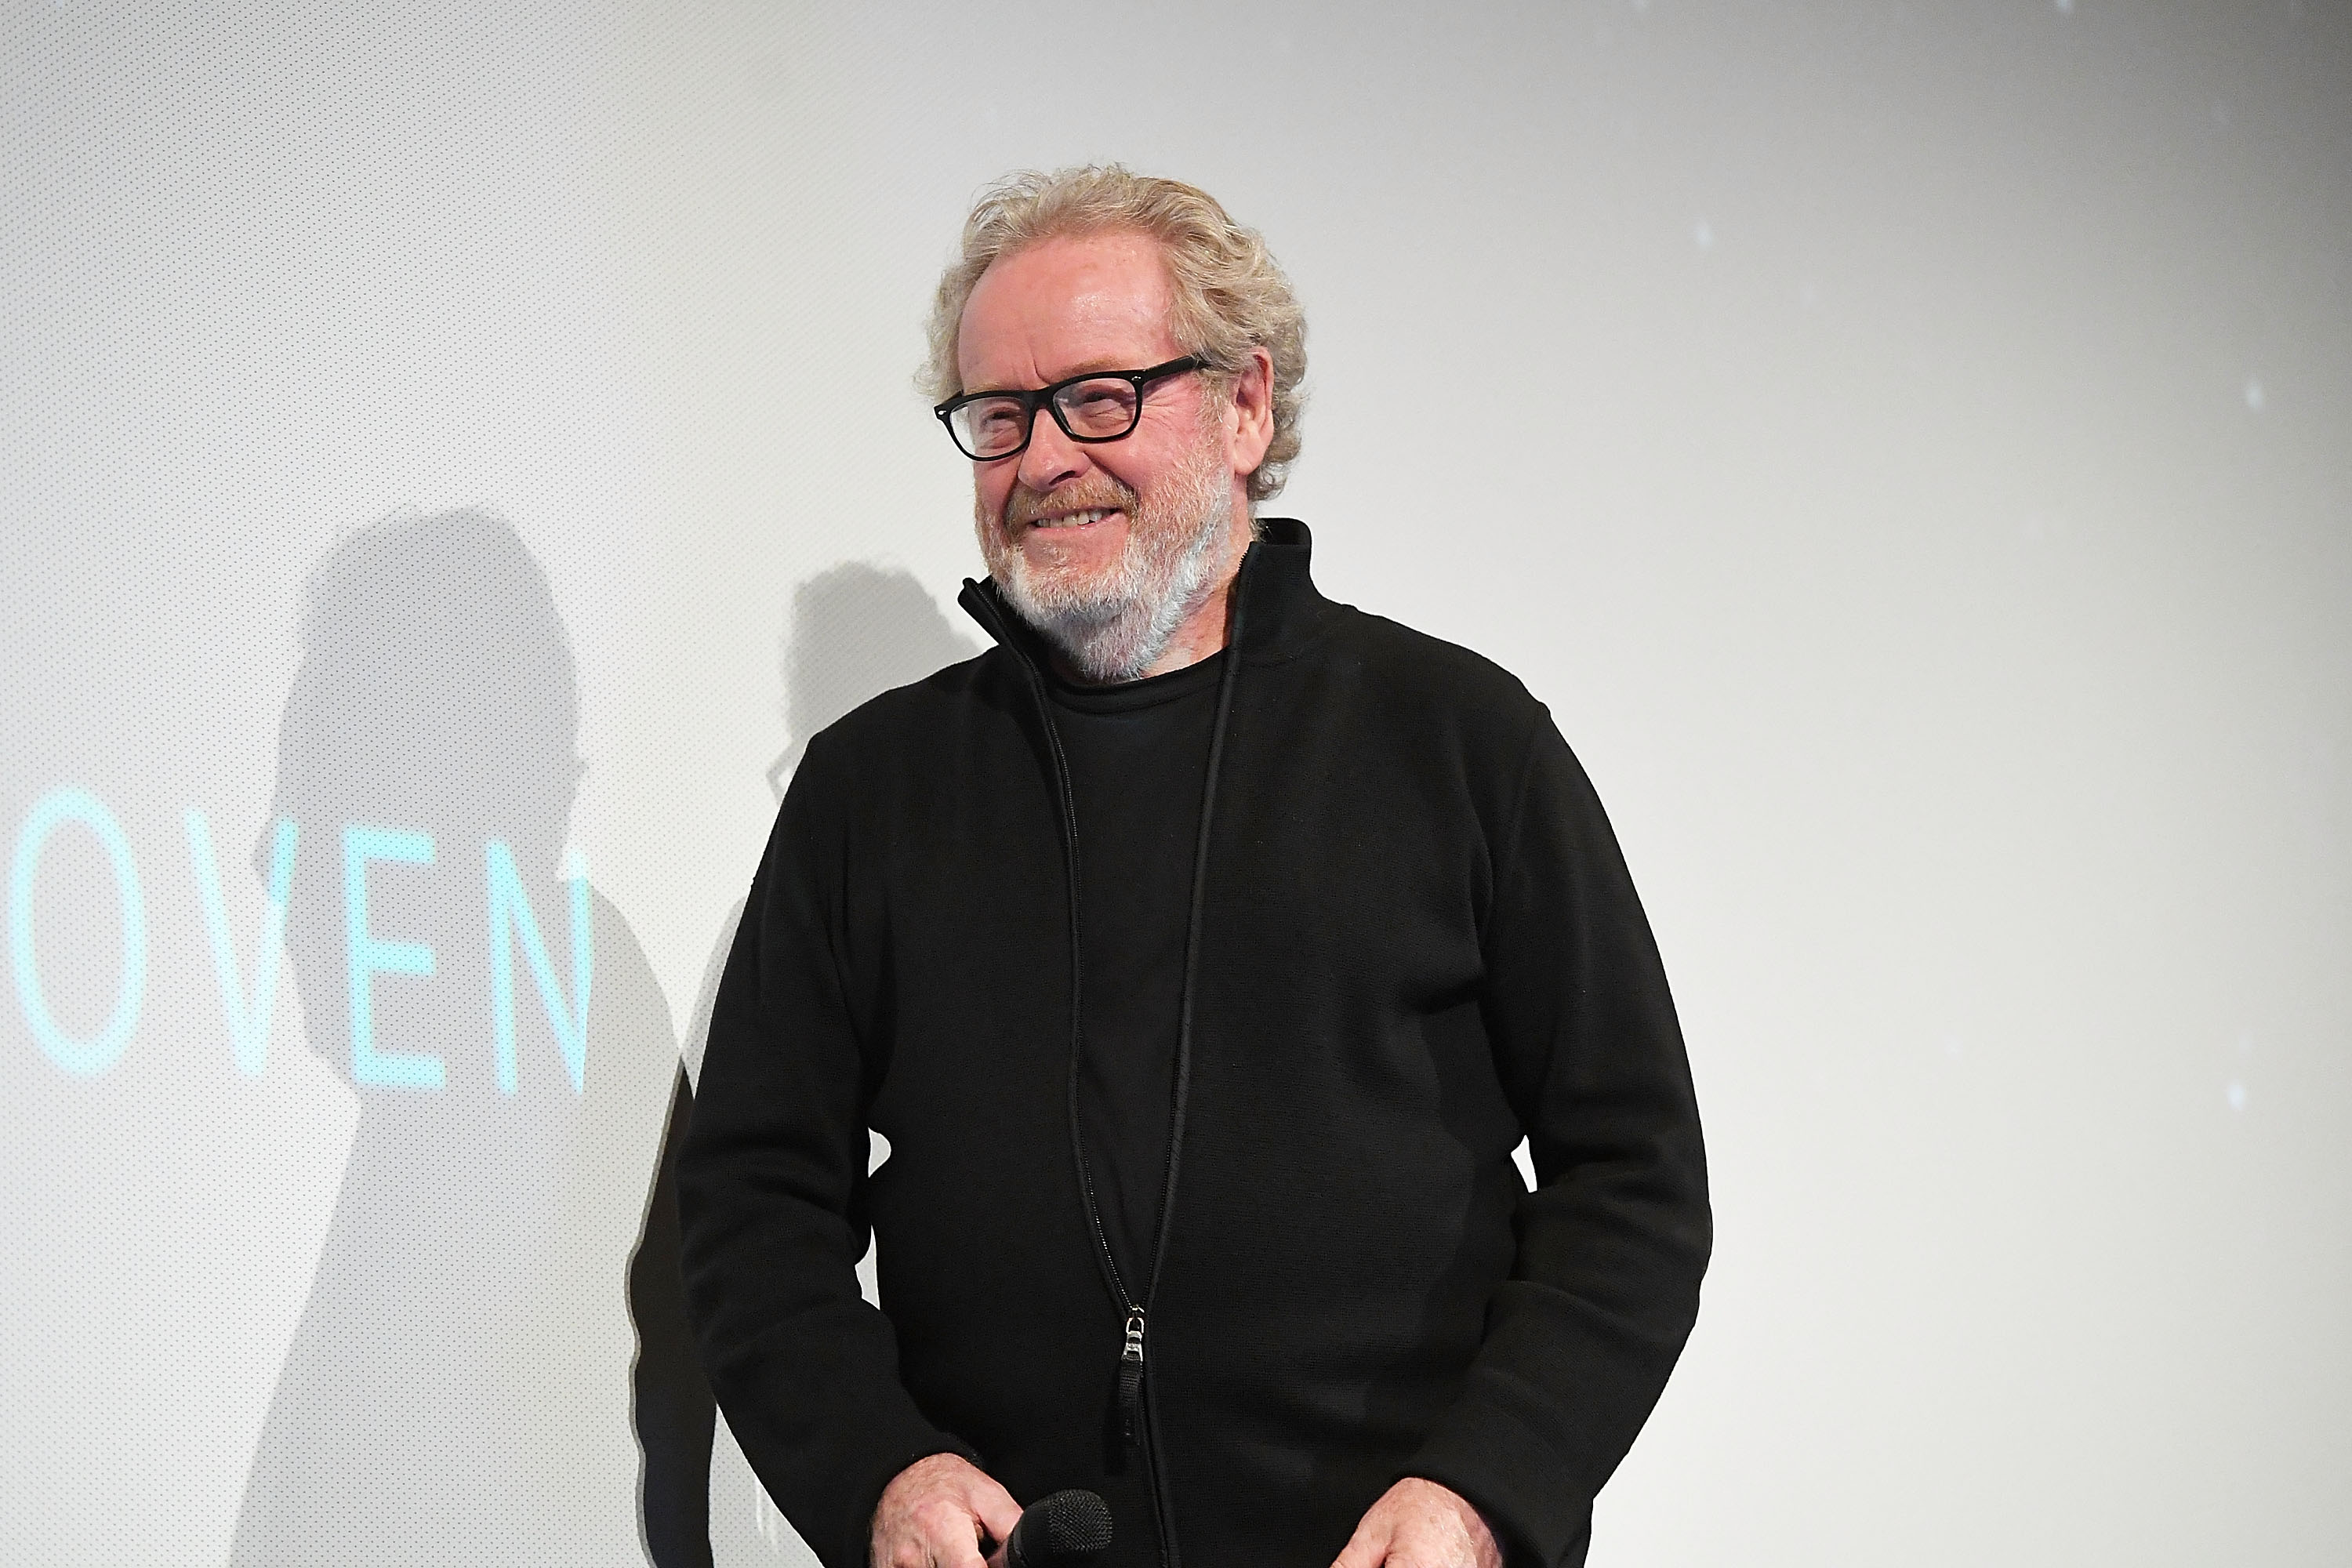 Director Sir Ridley Scott attends the 'Alien' premiere 2017 SXSW Conference and Festivals on March 10, 2017 in Austin, Texas.